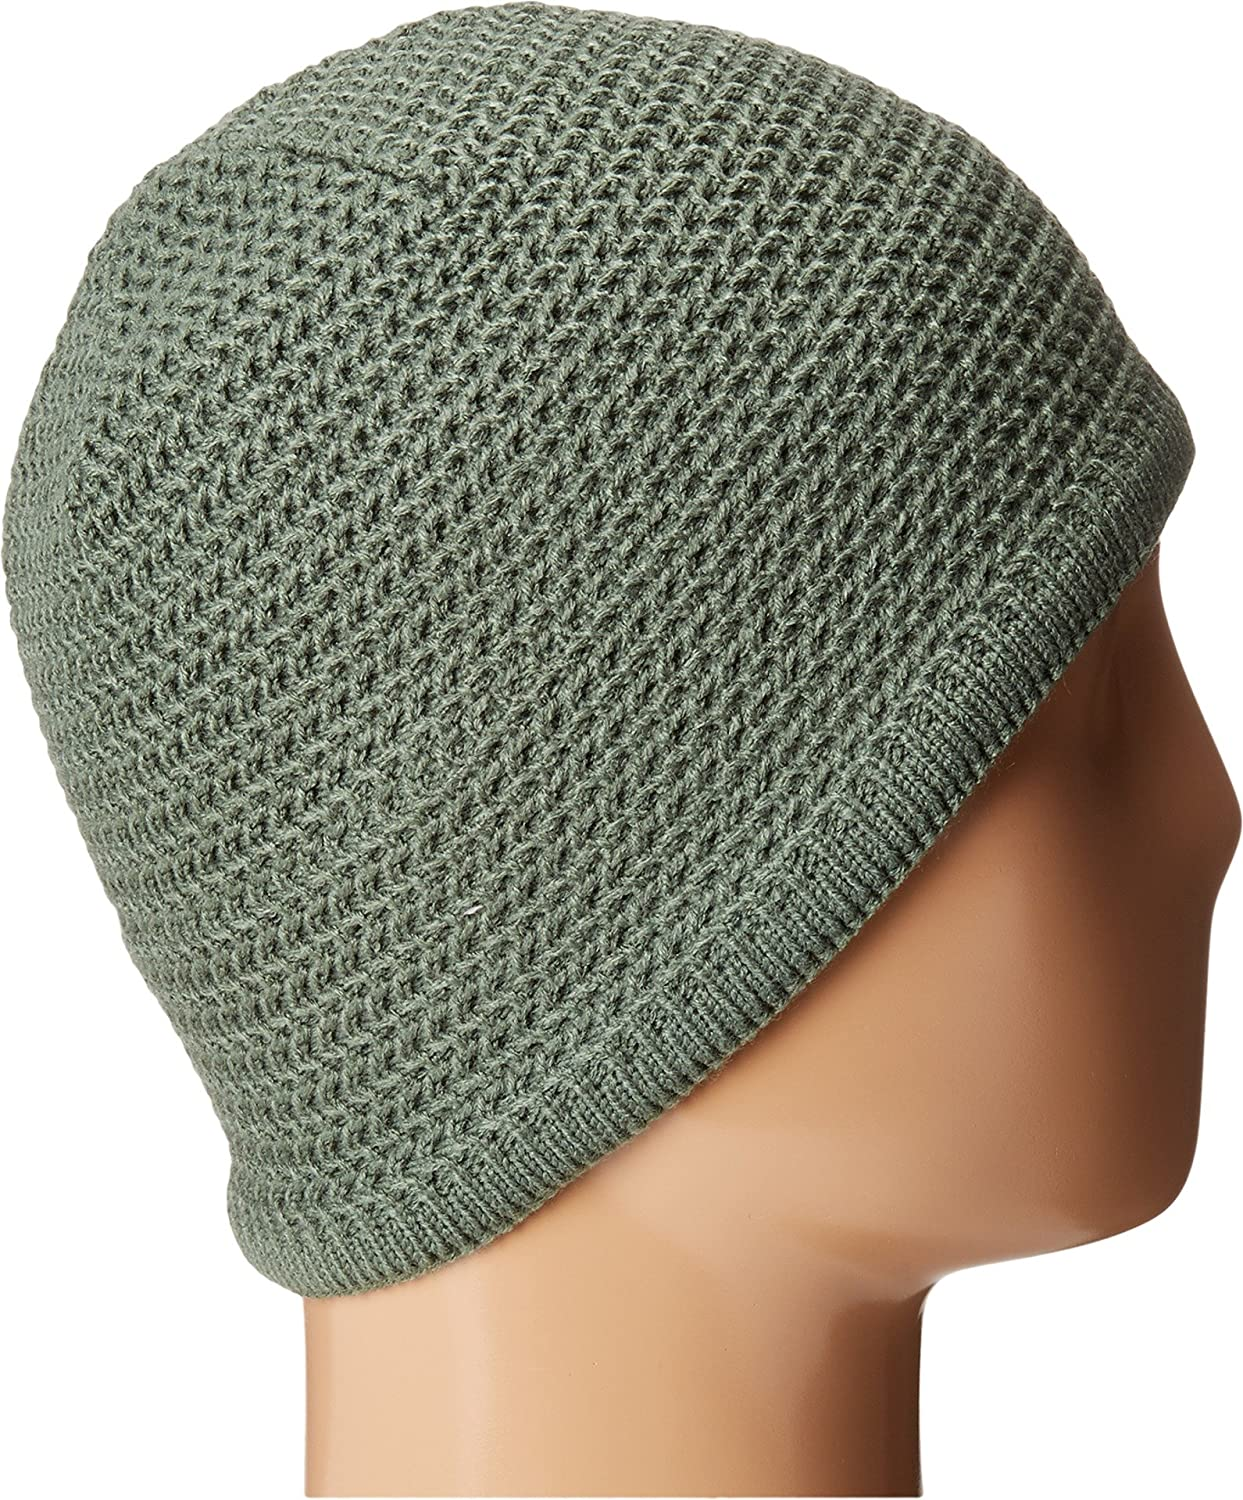 d2b6d90f371 The North Face Unisex Wicked Beanie Duck Green Hat  Amazon.ca  Sports    Outdoors